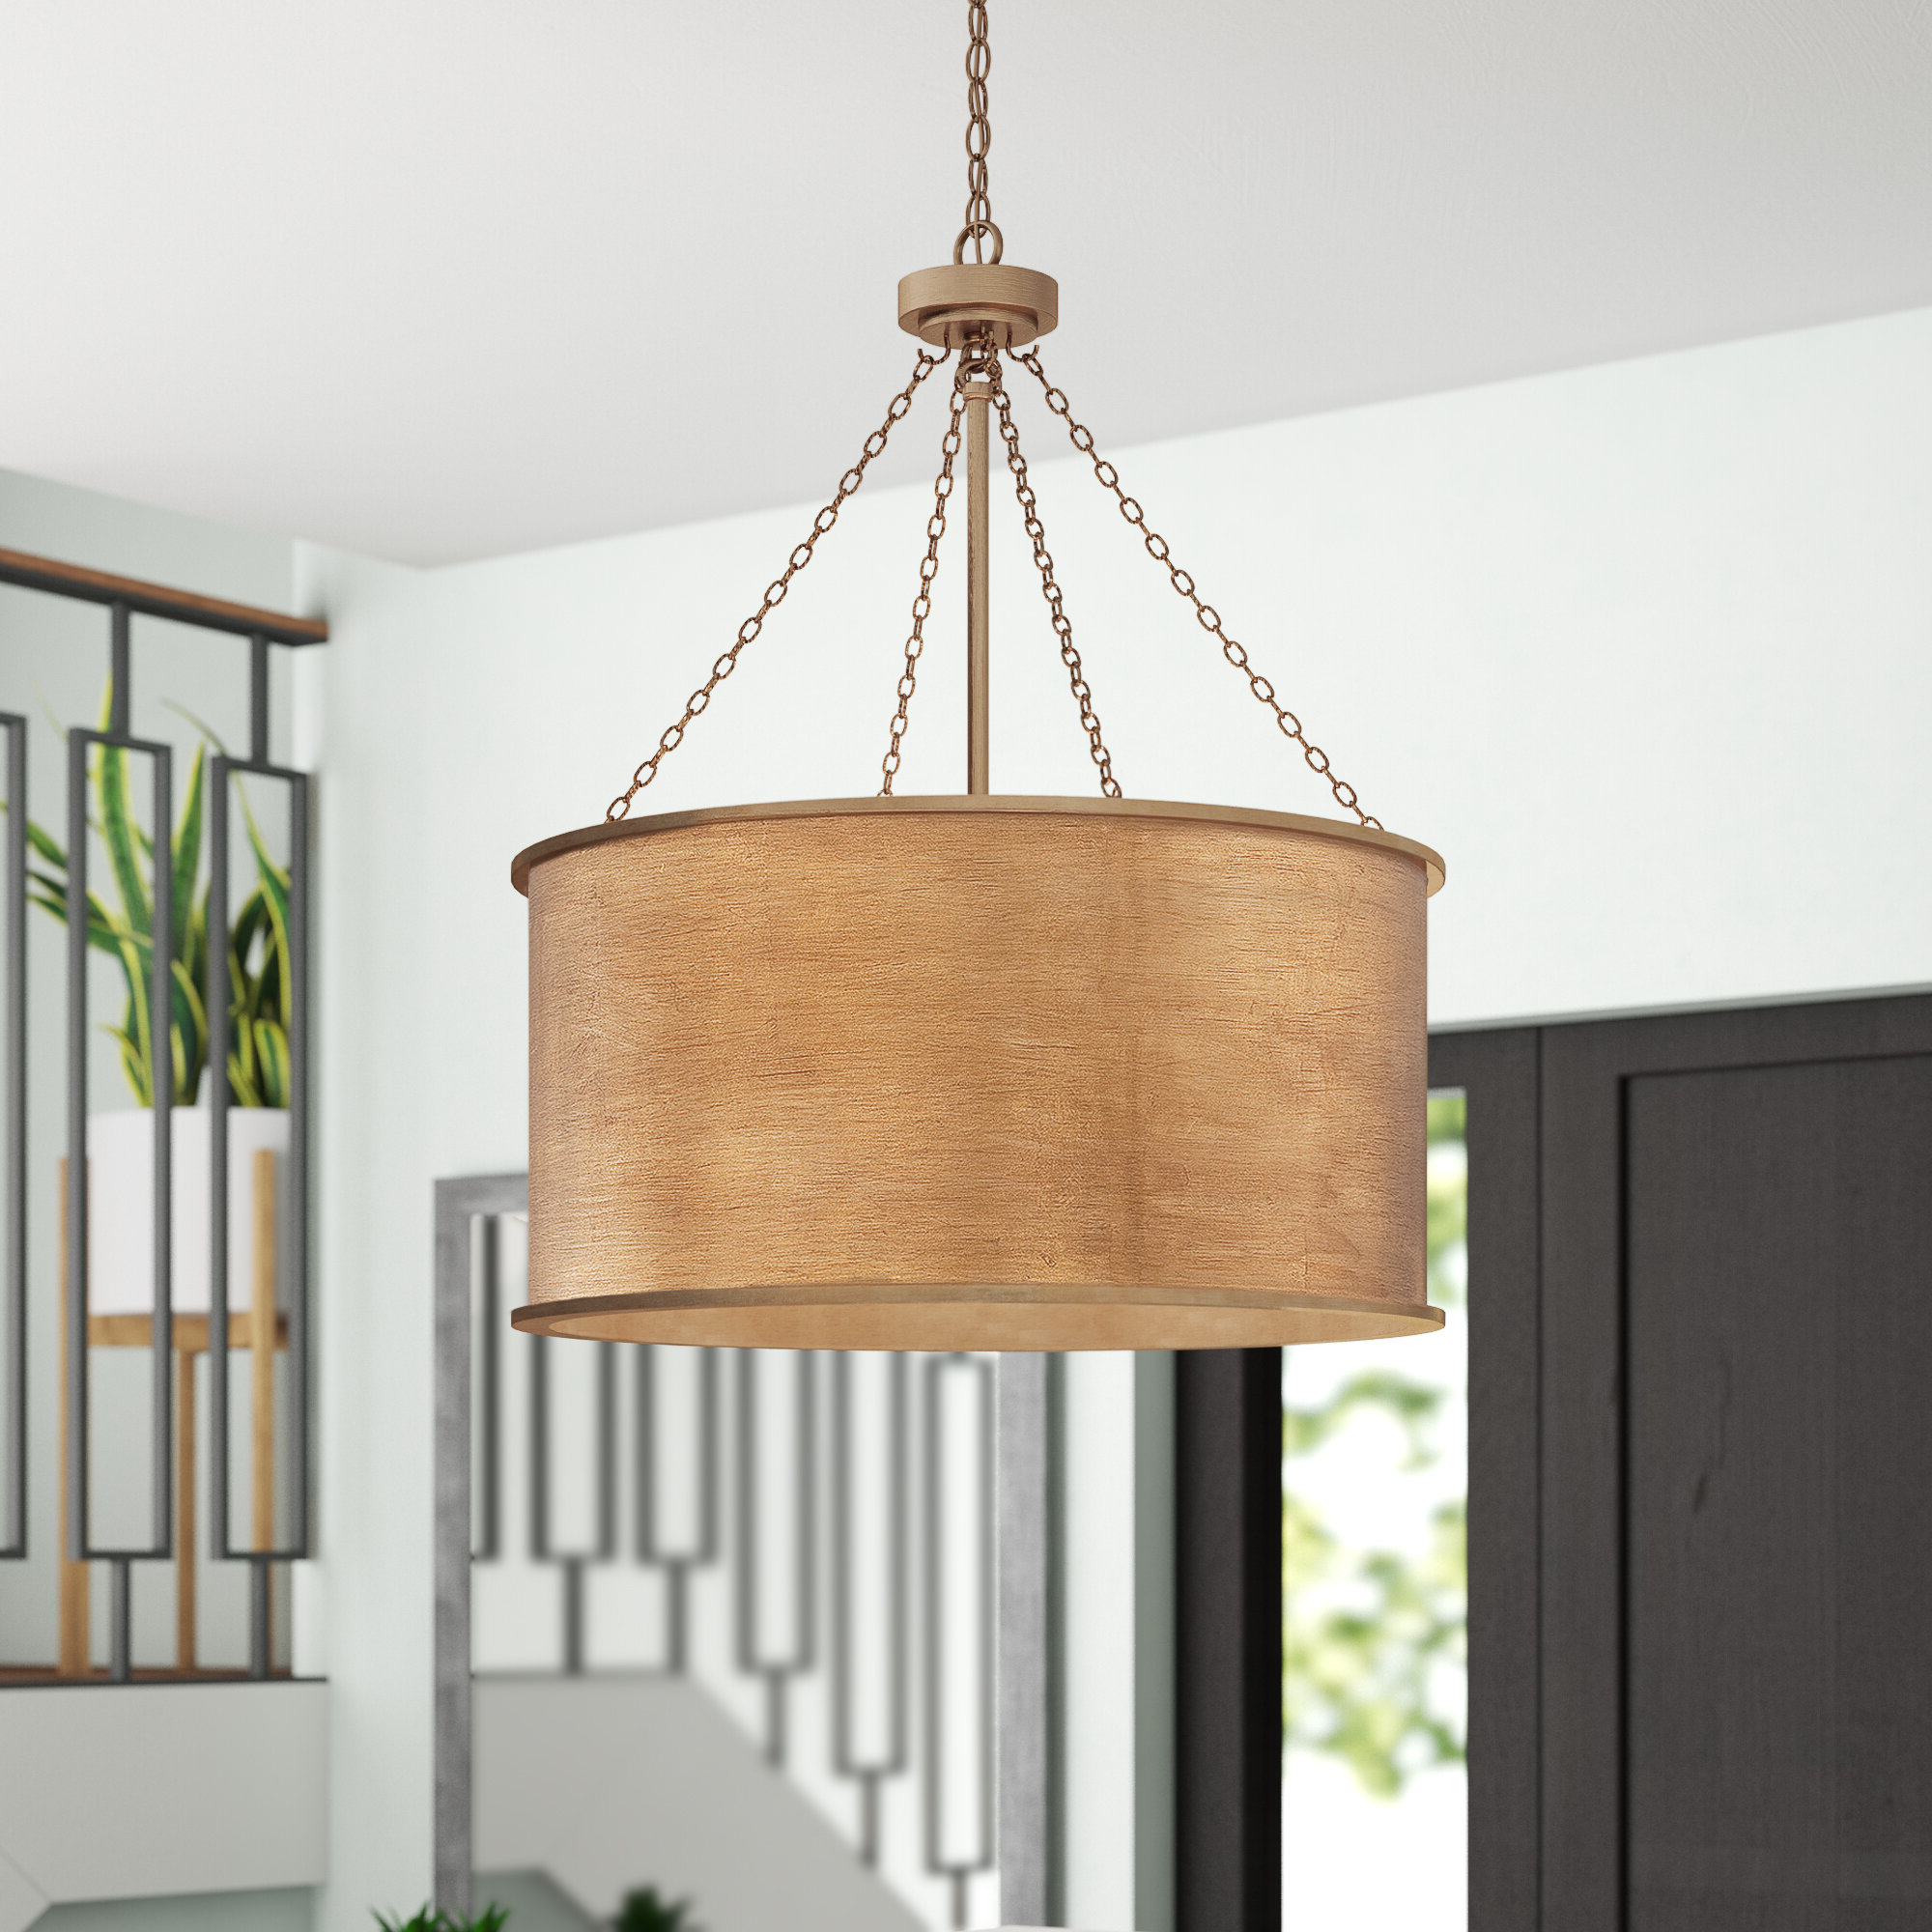 Well Known Cranston 4 Light Drum Chandelier Throughout Dailey 4 Light Drum Chandeliers (View 5 of 20)